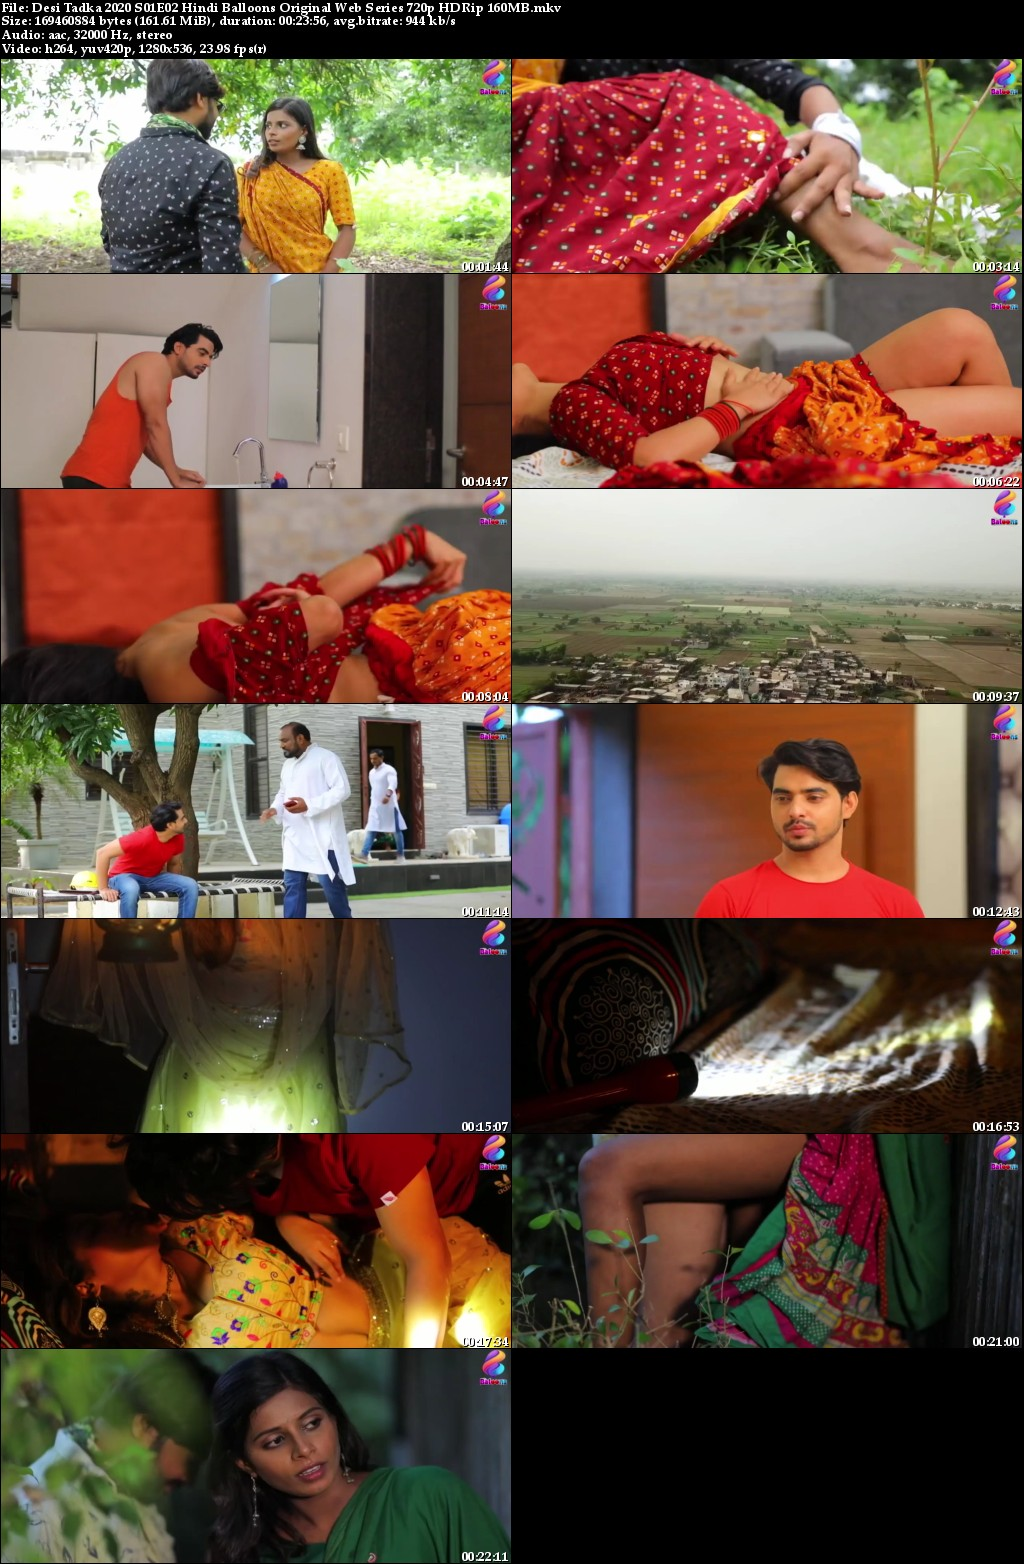 Desi-Tadka-2020-S01-E02-Hindi-Balloons-Original-Web-Series-720p-HDRip-160-MB